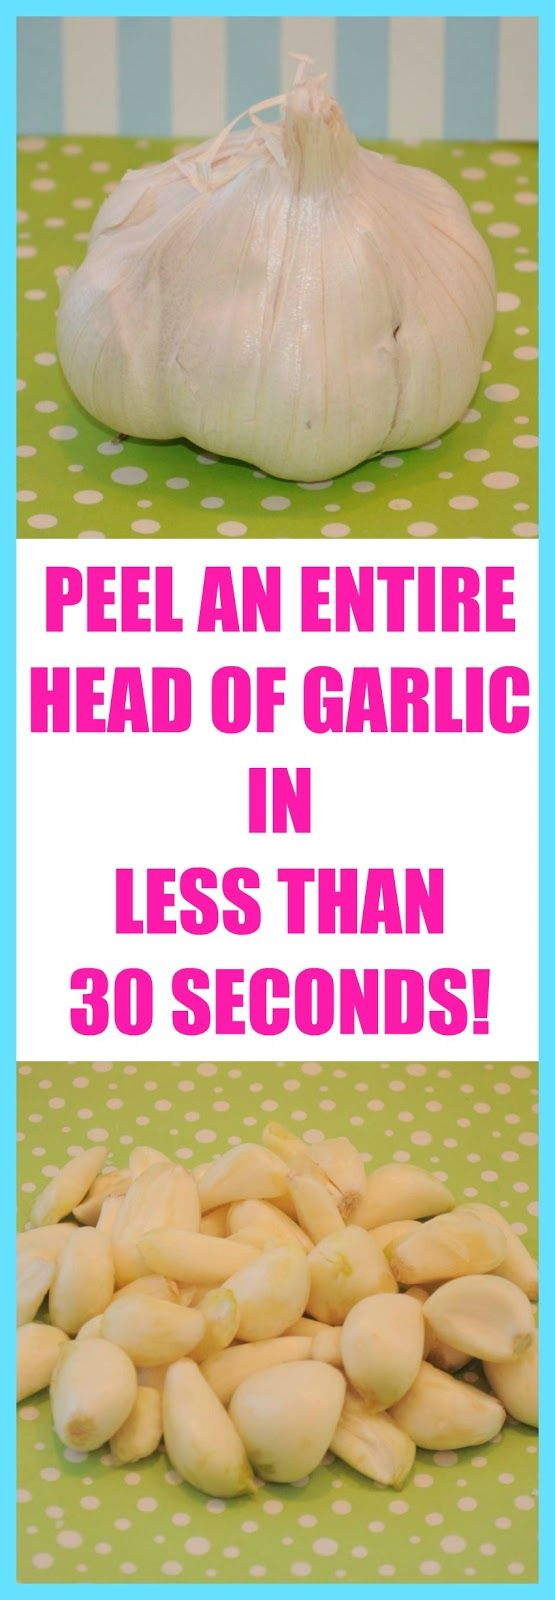 No gadgets no knives...peel an entire head of garlic in less than 30 seconds...kinda like performing a magic trick in your kitchen!